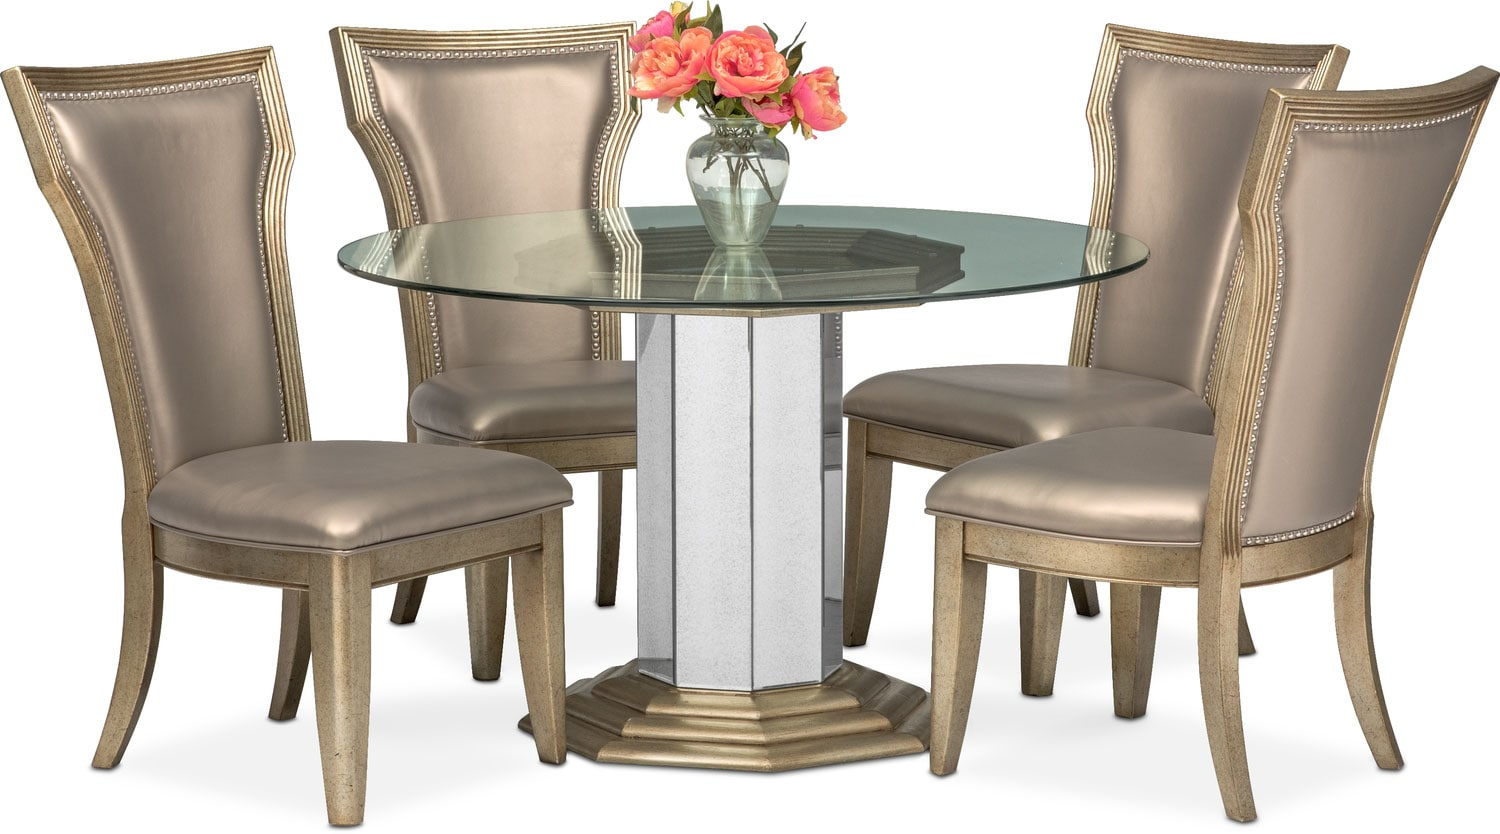 Dining Room Furniture - Angelina Round Table and 4 Dining Chairs